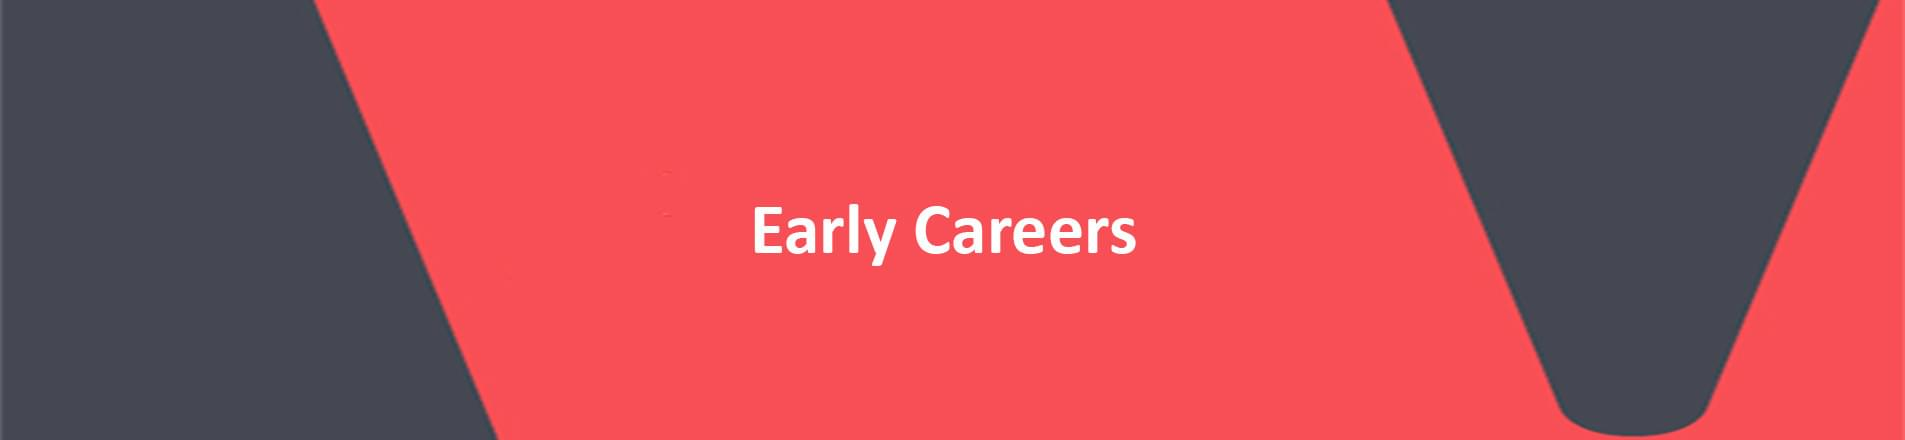 The title 'Early Careers' on the red VERCIDA background.